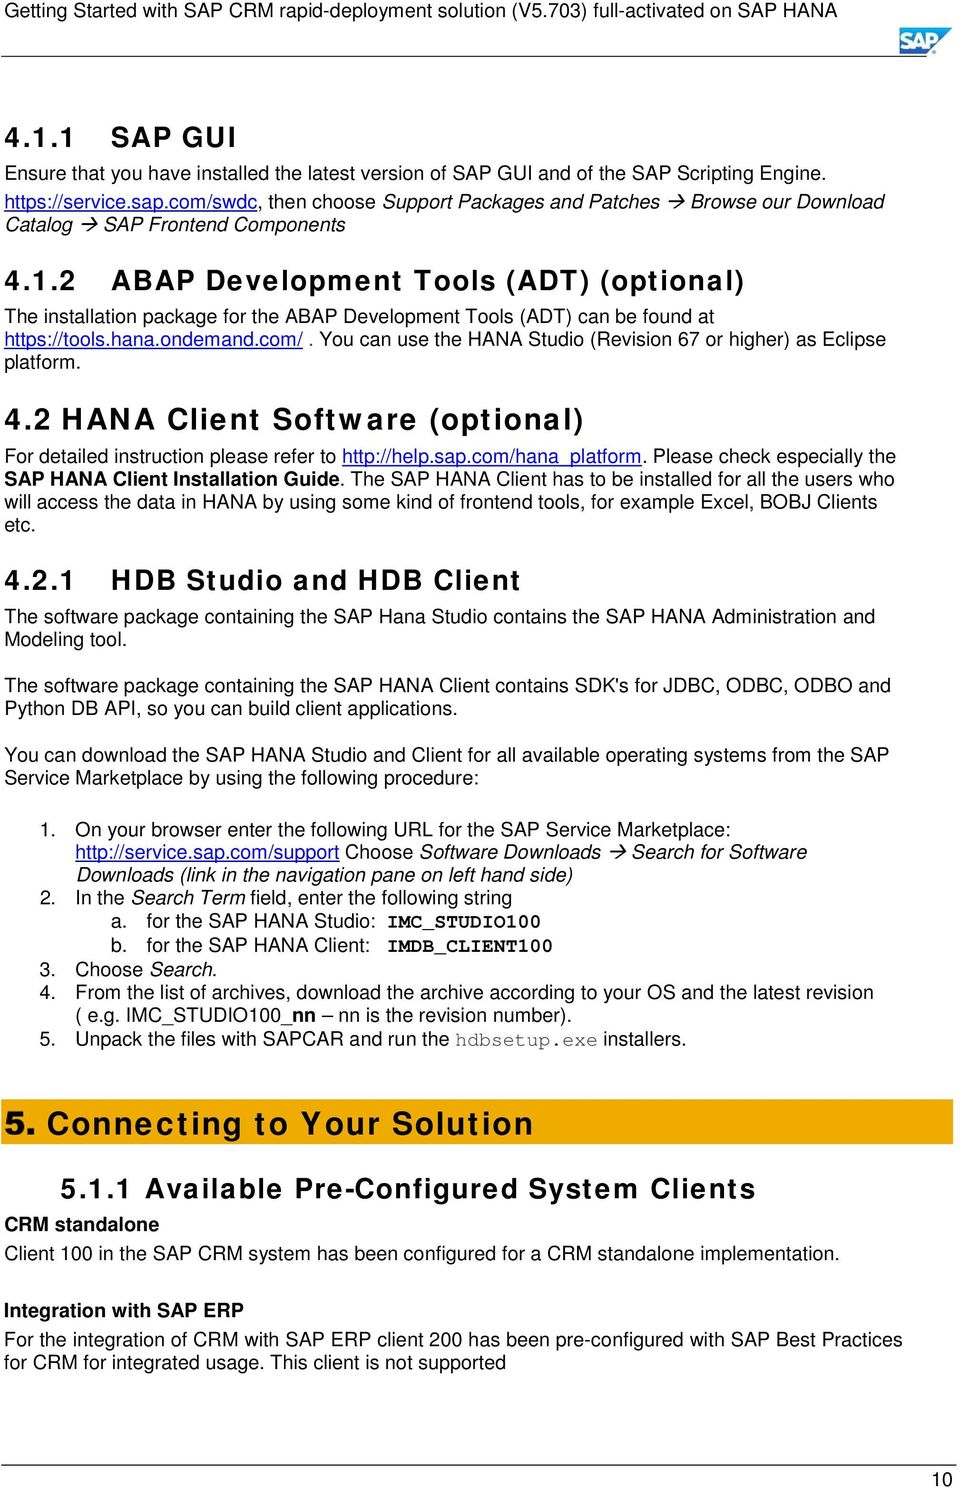 Getting Started with  SAP CRM rapid-deployment solution (V5